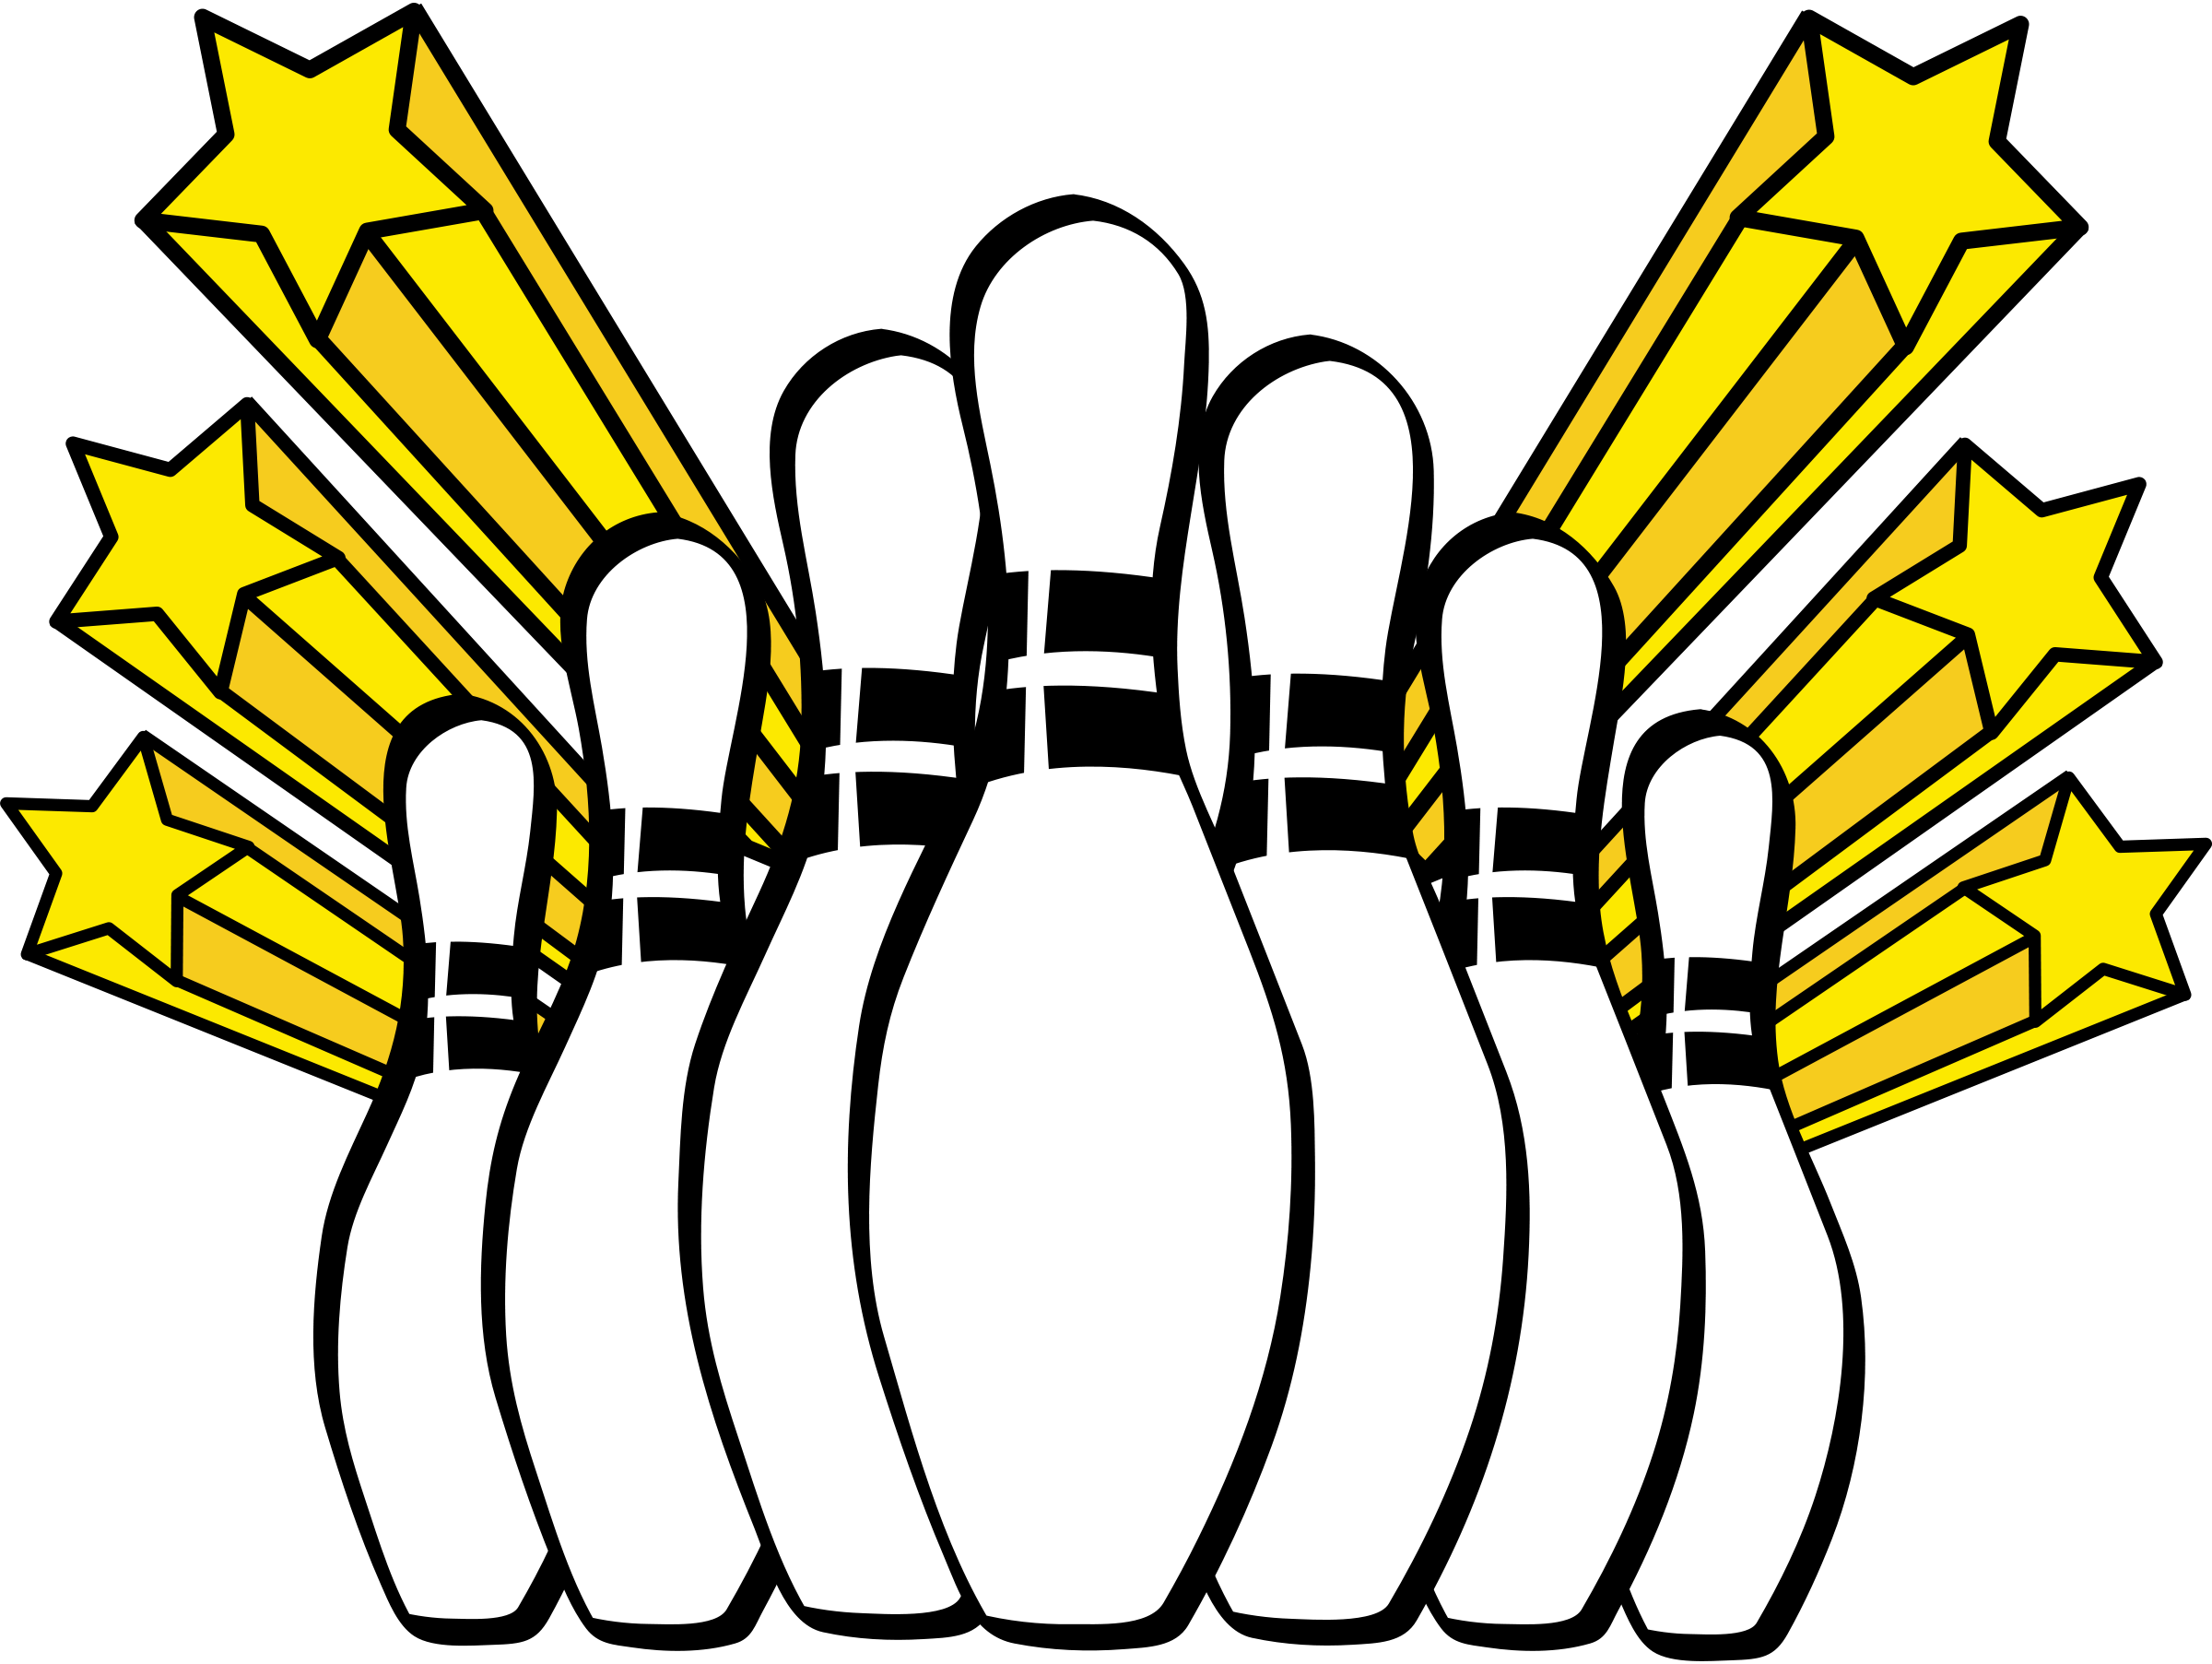 Images For Bowling Clip Art Black And White. 7e311b2be358c4112ea706840e24ca